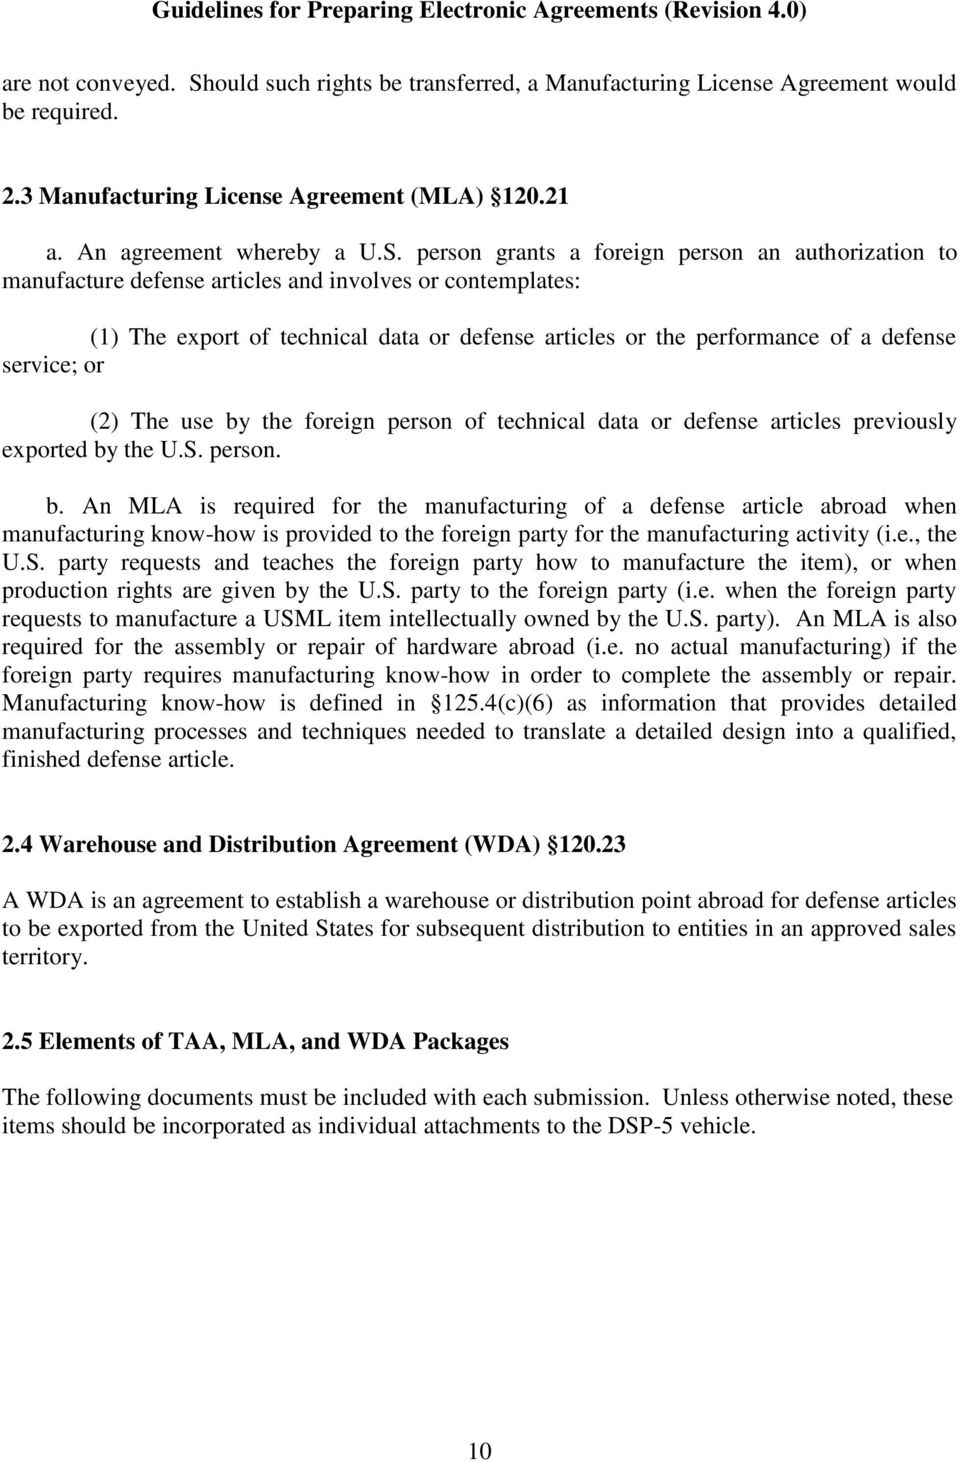 Guidelines For Preparing Electronic Agreements Pdf